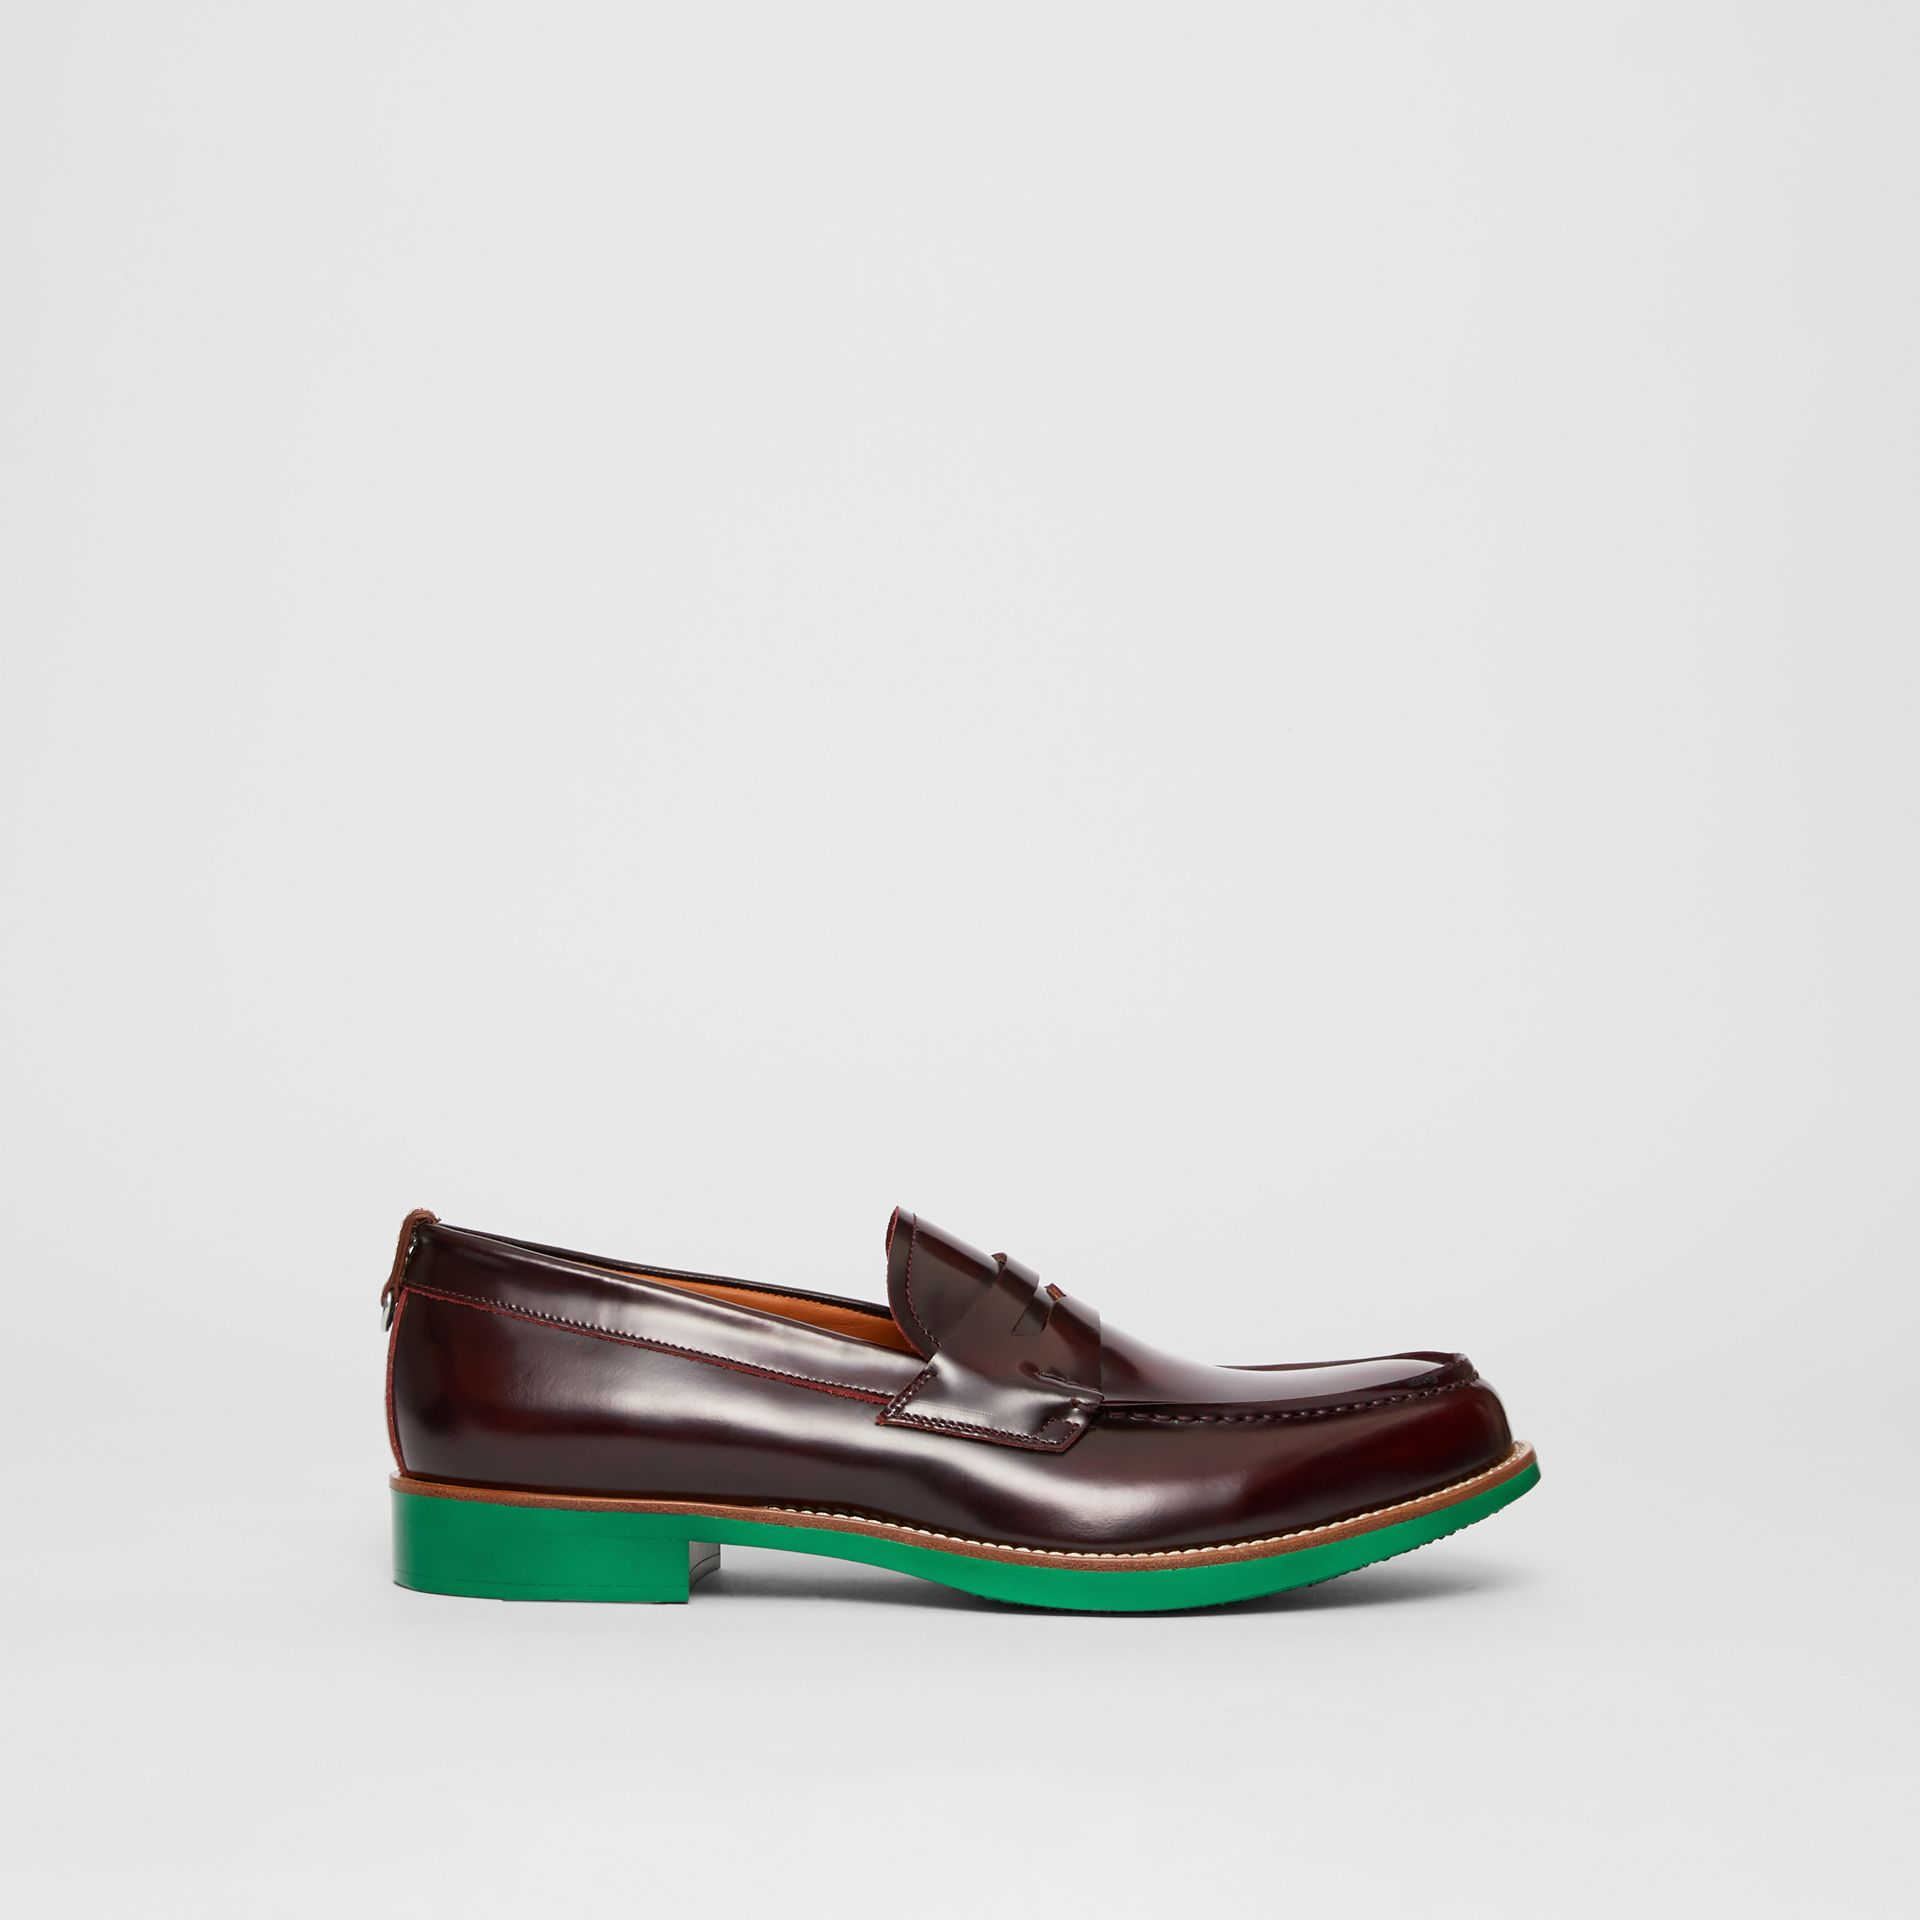 D-ring Detail Contrast Sole Leather Loafers in Bordeaux/green - Men | Burberry United Kingdom - gallery image 5